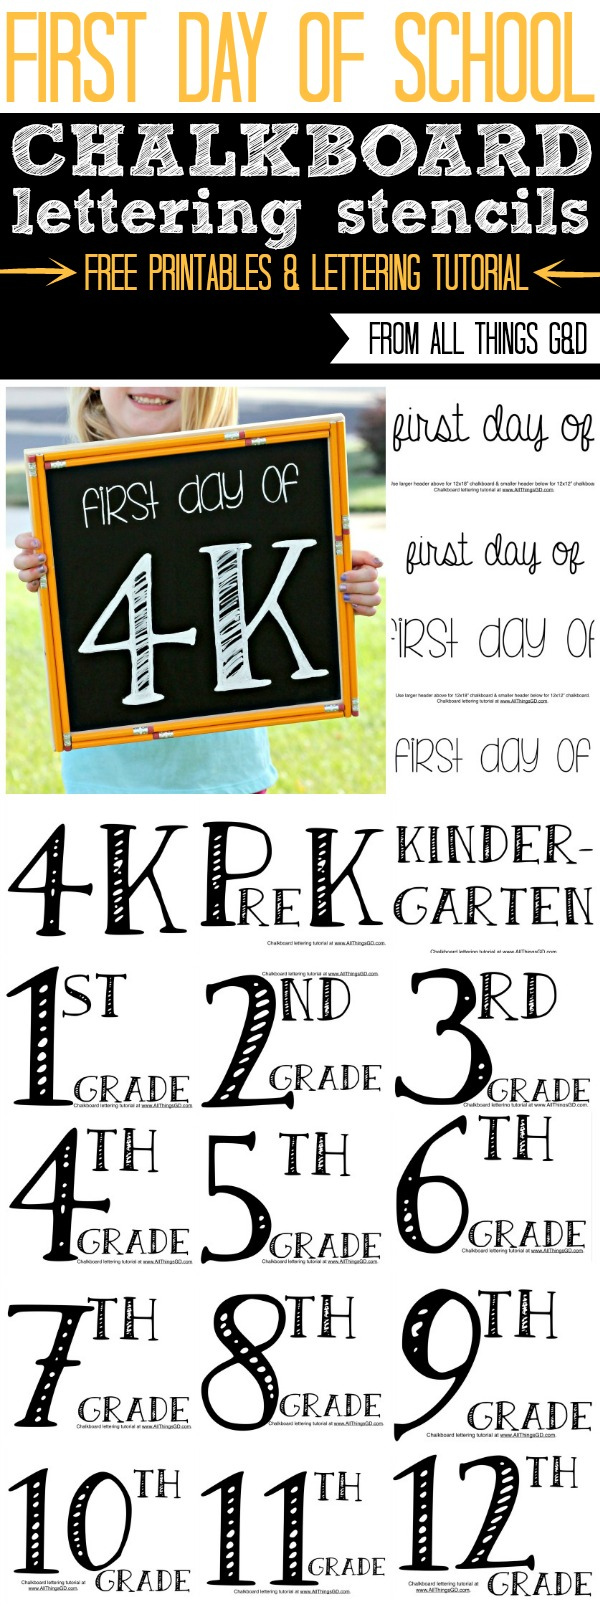 Free first day of school chalkboard sign lettering templates for preschool through high school! #BTS #chalkboardlettering #chalkboardtemplate #chalkboardsign #firstdayofschool #firstdayofschoolsign #firstdayofschoolchalkboardsign